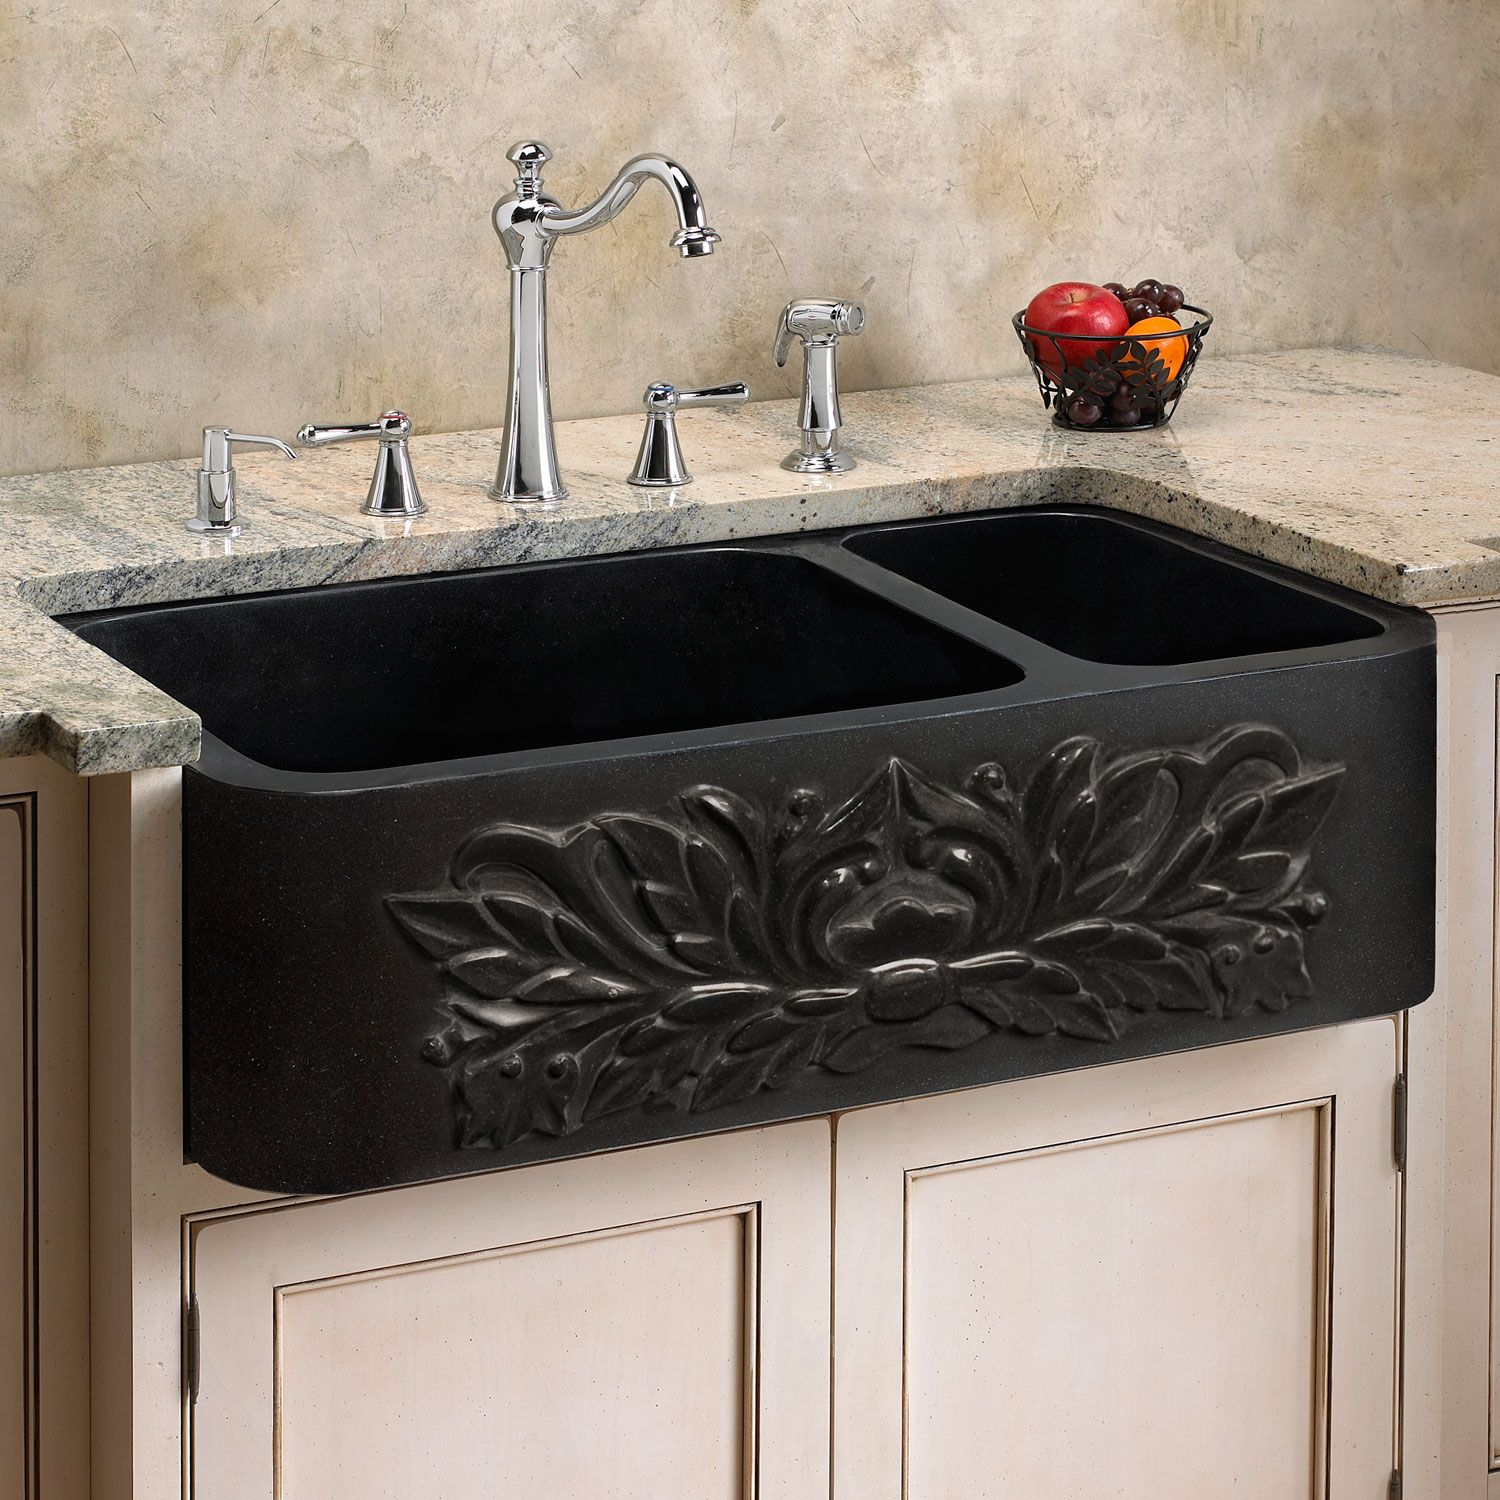 Black Farm House Sink Granite Double Well Farmhouse Sink With Prep Bowl Signature Hardware Farmhouse Sink Kitchen Black Farmhouse Sink Farmhouse Sink